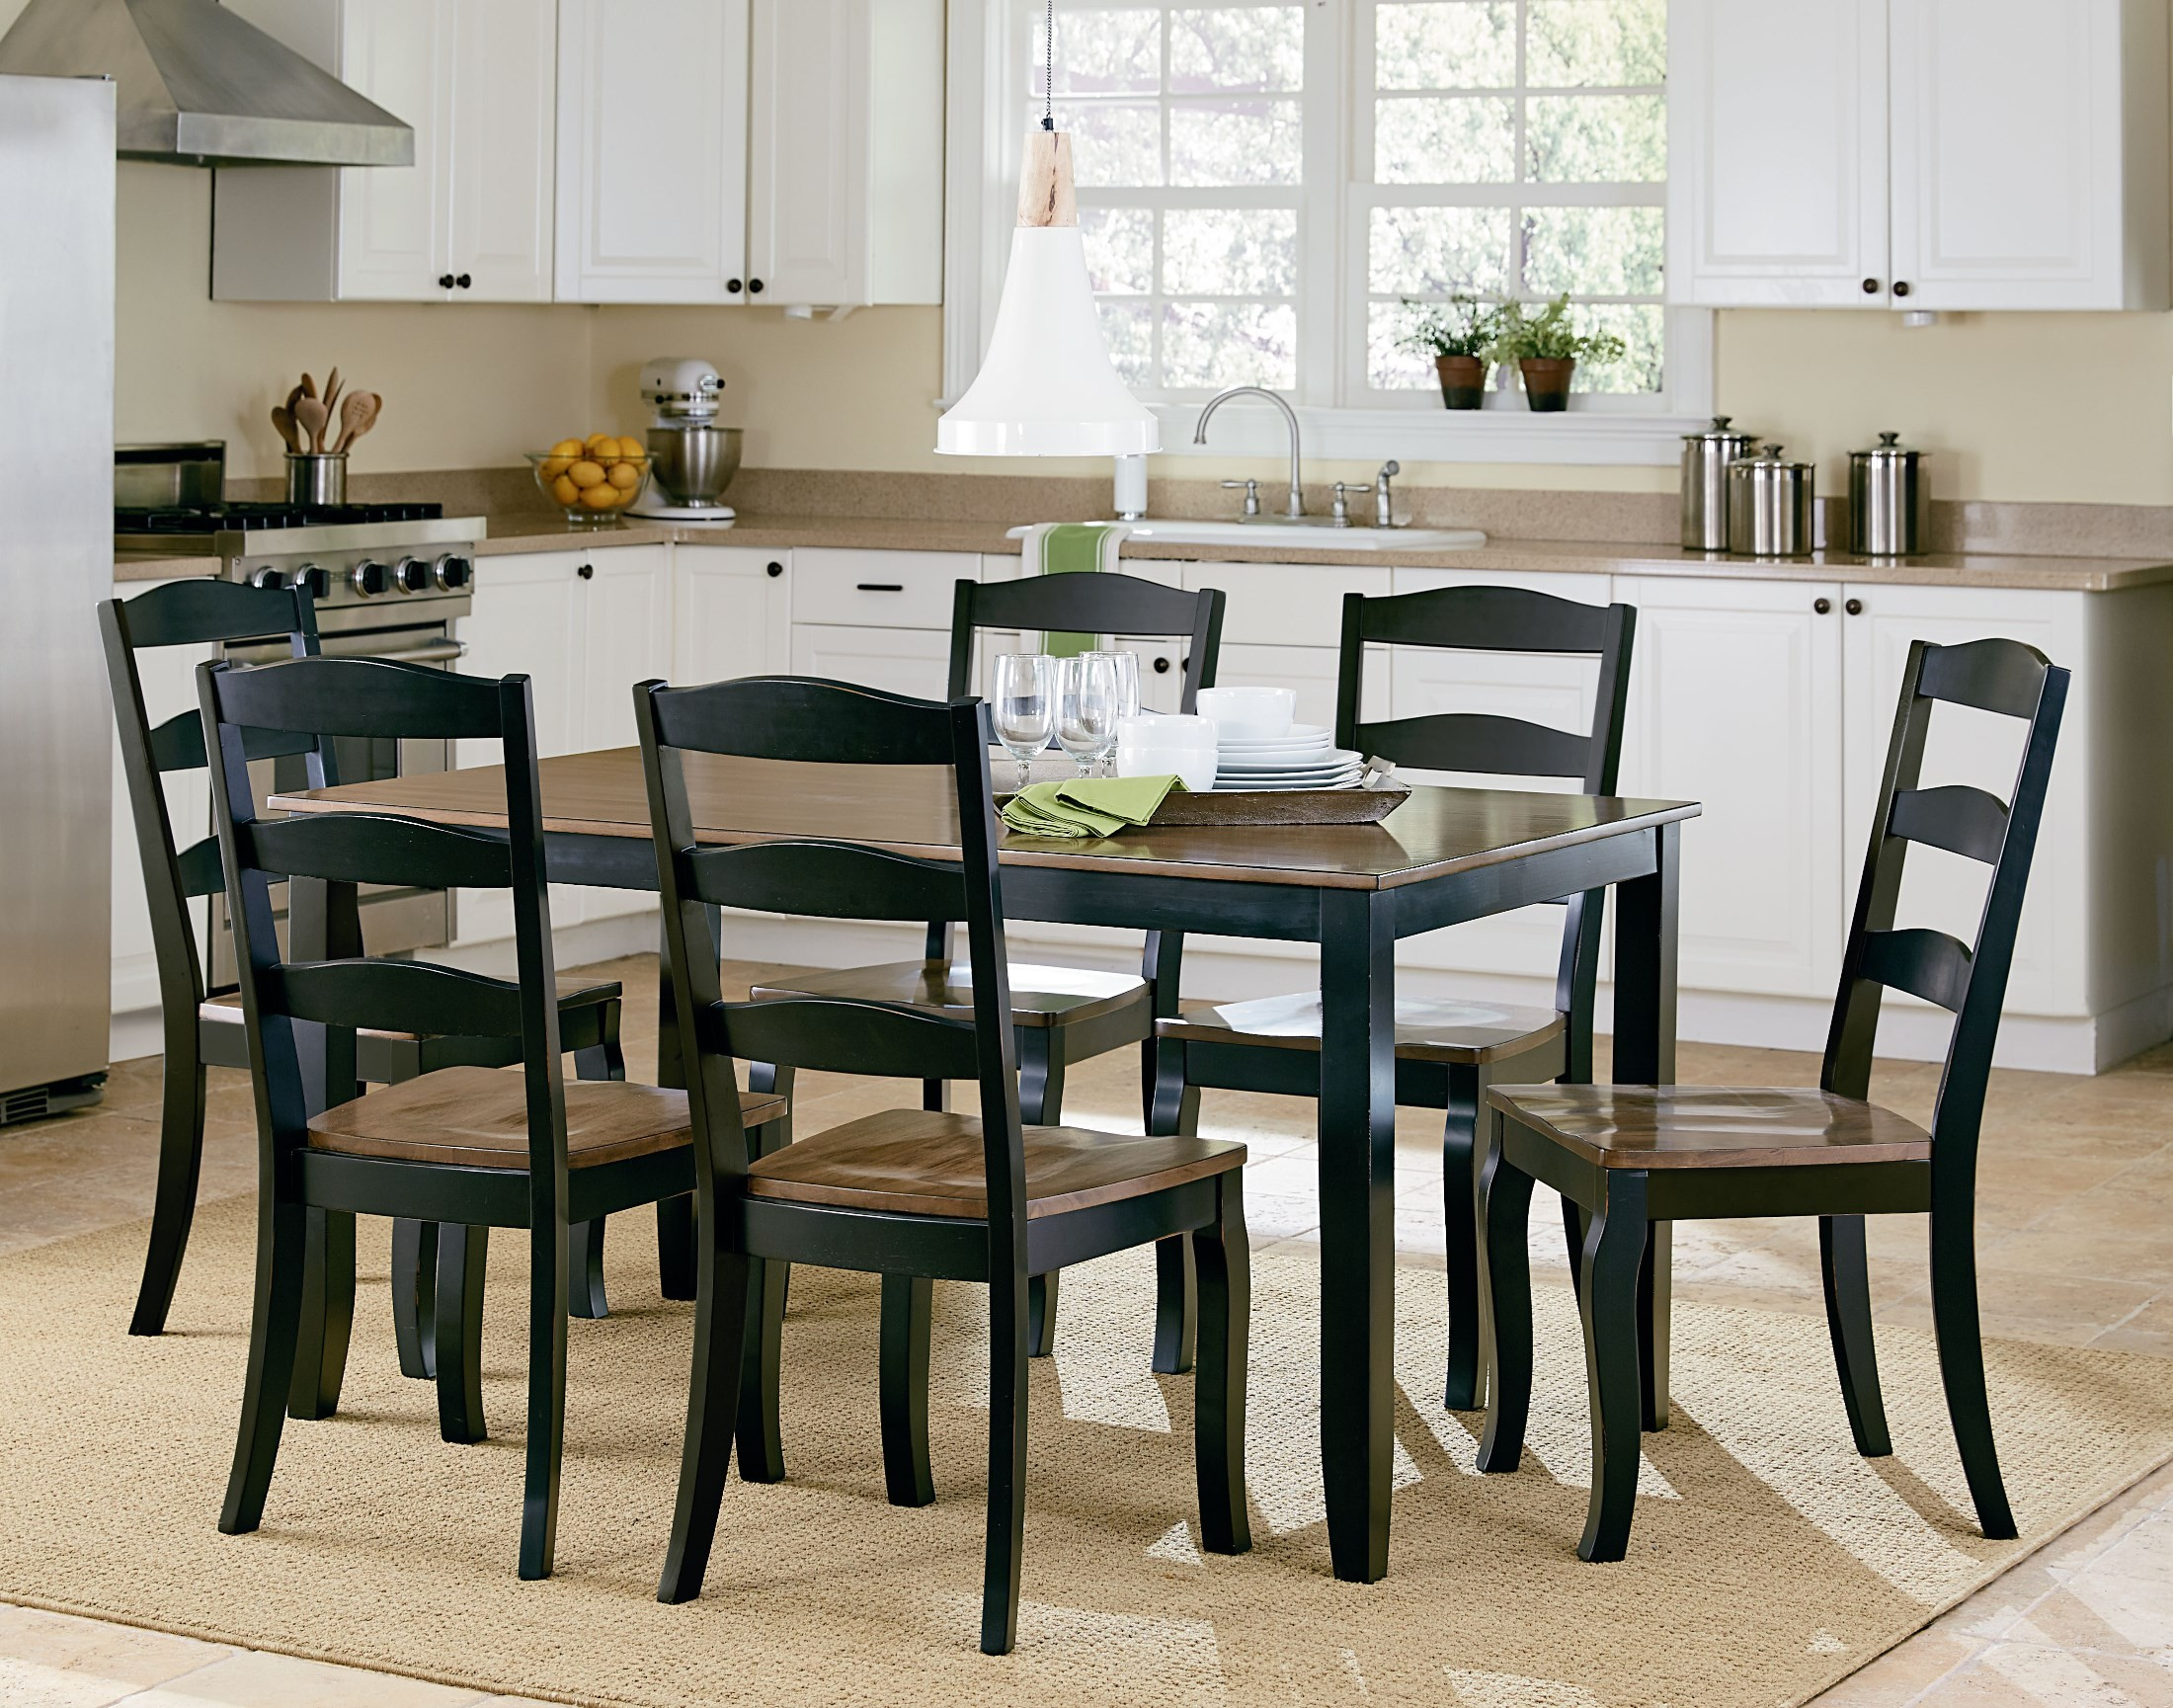 black 7 piece dining room set | Highland Brown and Black 7 piece Dining Room Set, 16542 ...